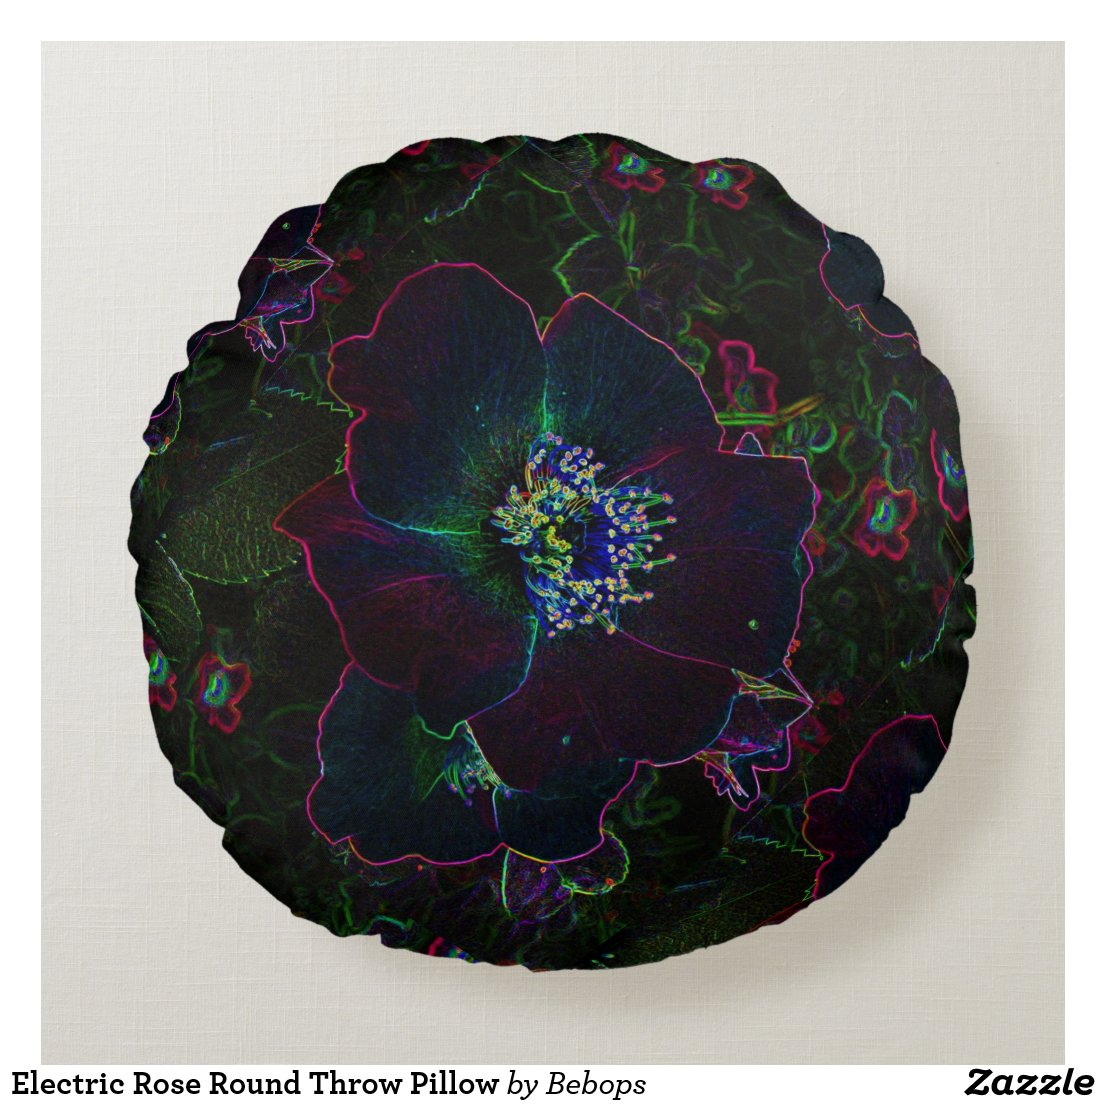 Electric Rose Round Throw Pillow